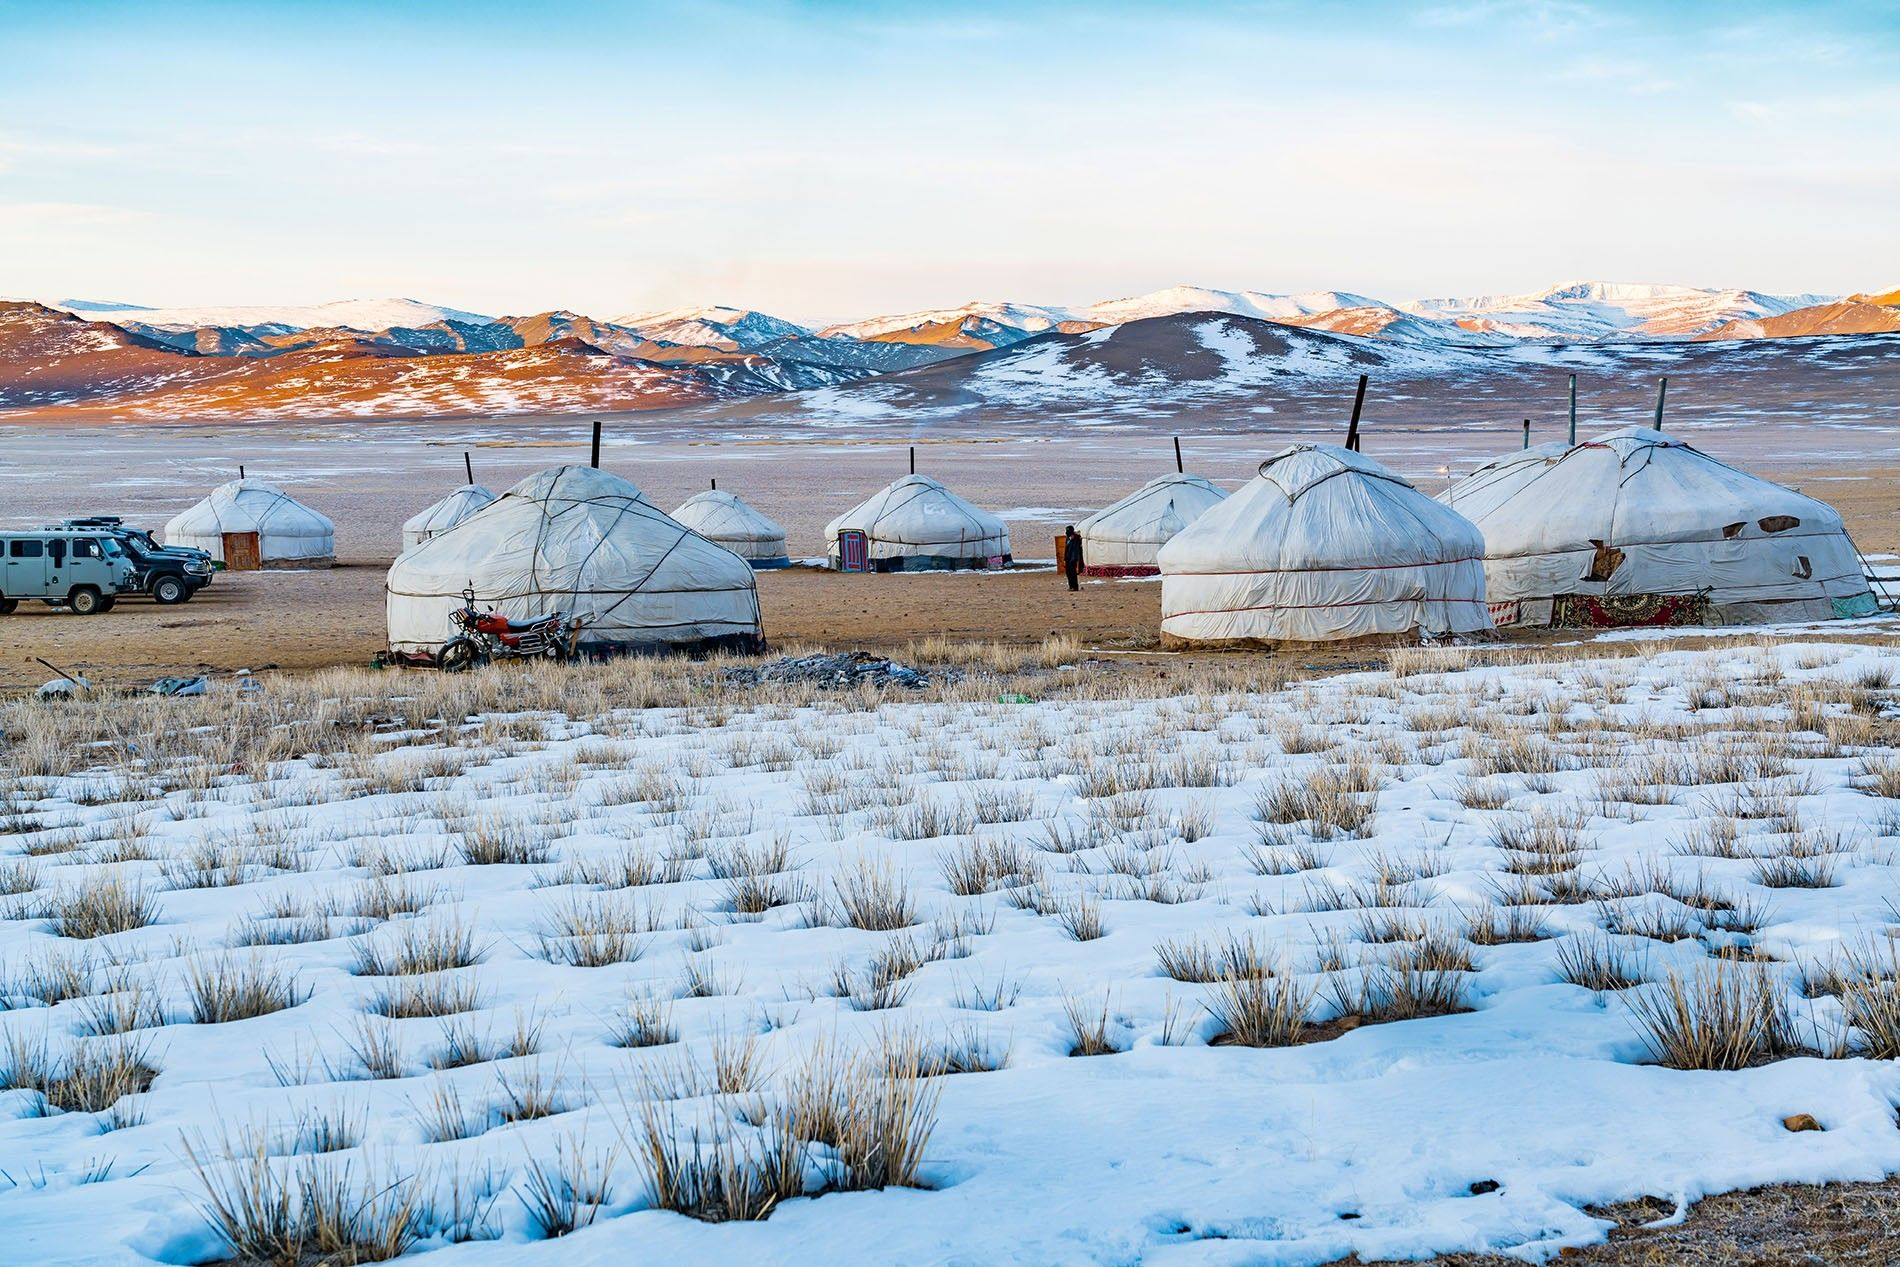 Gers on the snowy Mongolia steppe.